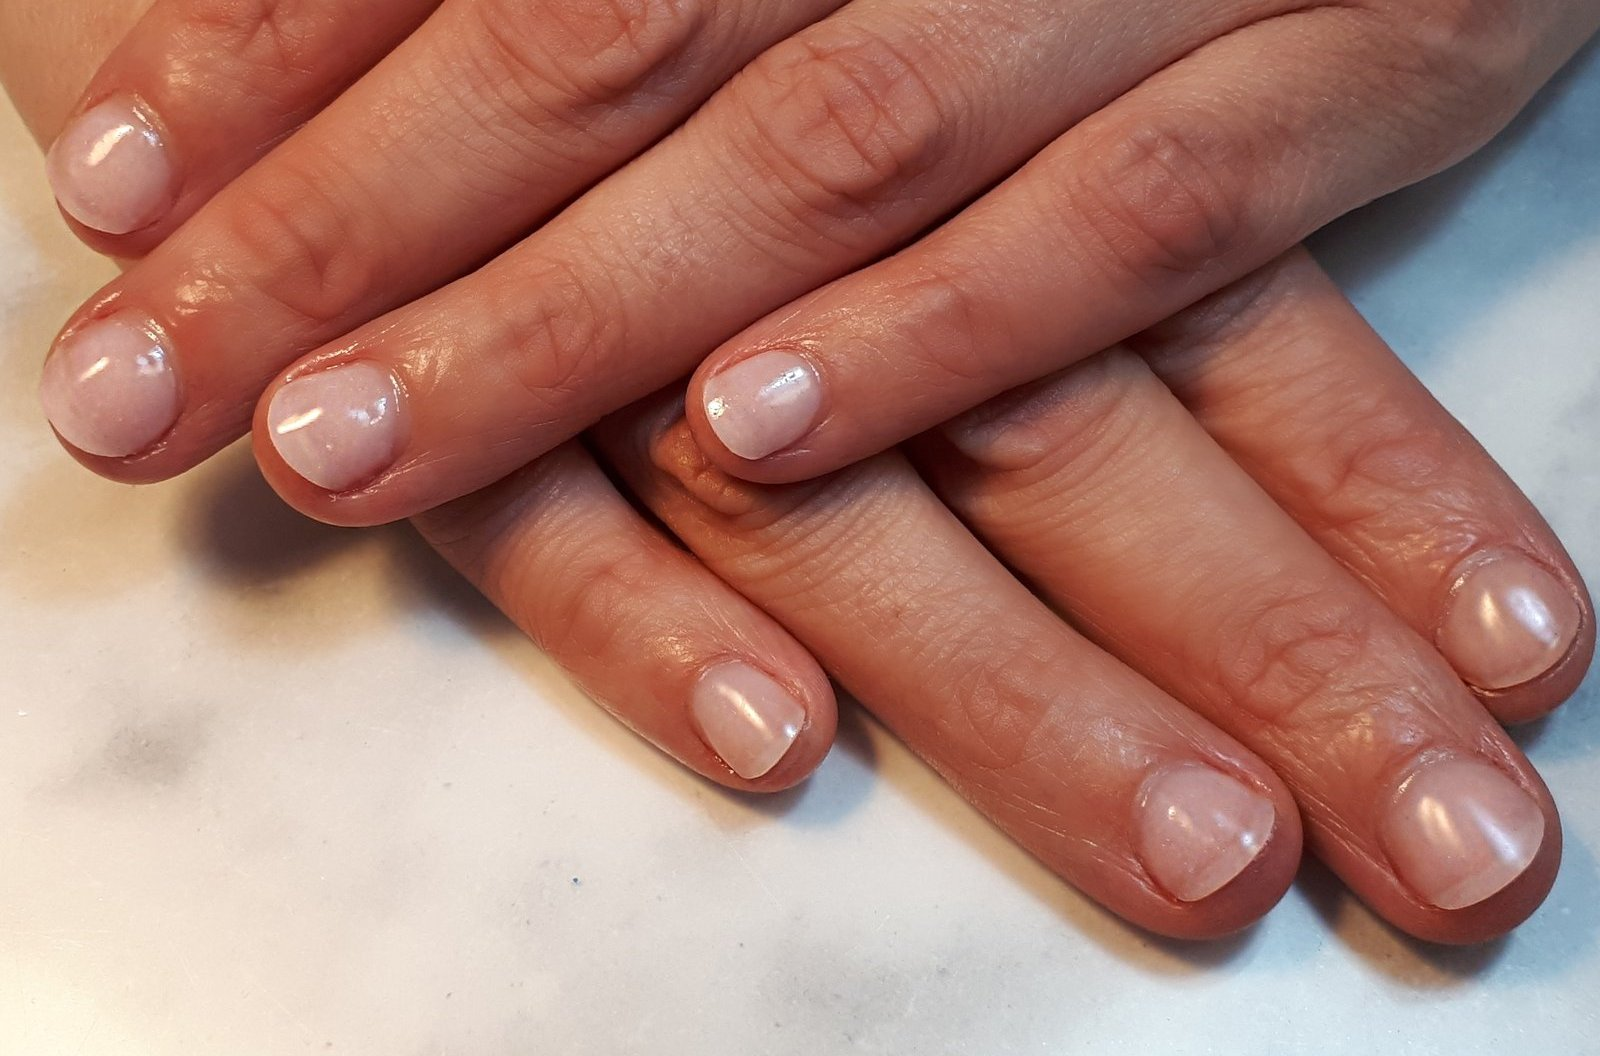 Quit nail biting - check our packages